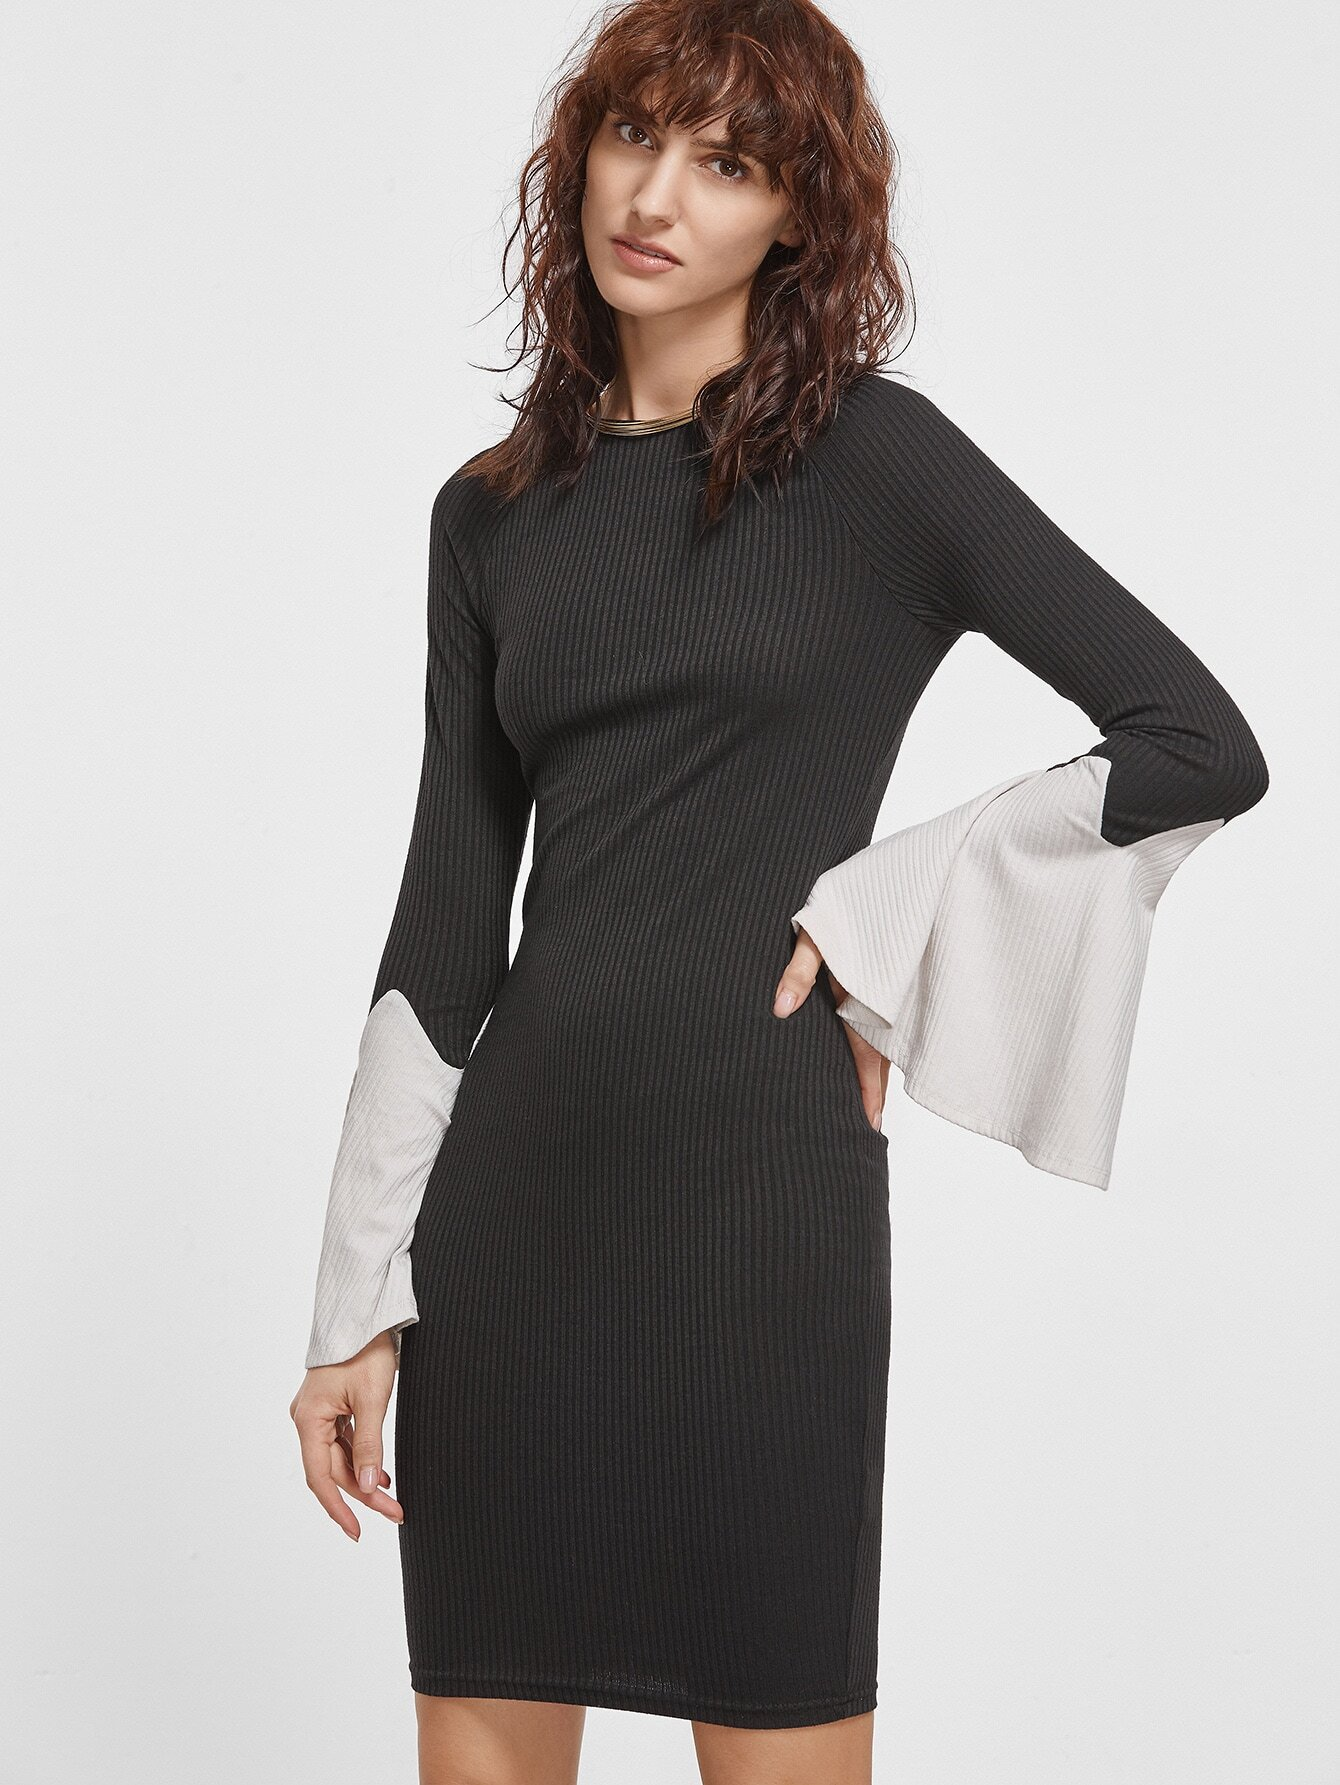 Black Ribbed Knit Contrast Bell Sleeve Bodycon Dress dress161201599